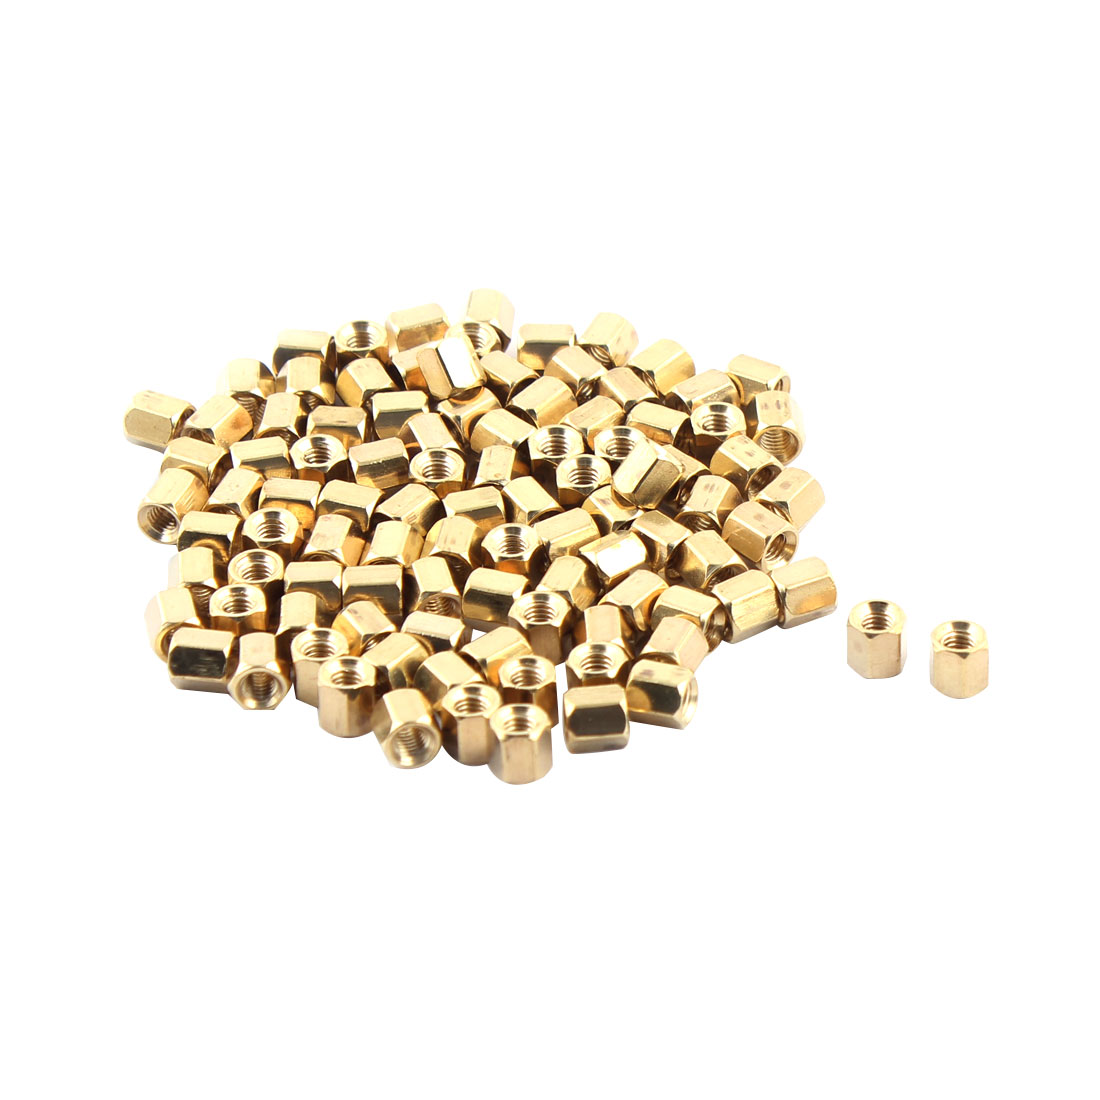 100 Pieces 3mm Female Threaded PCB Brass Standoff Spacer 5mm High Gold Tone M3x5